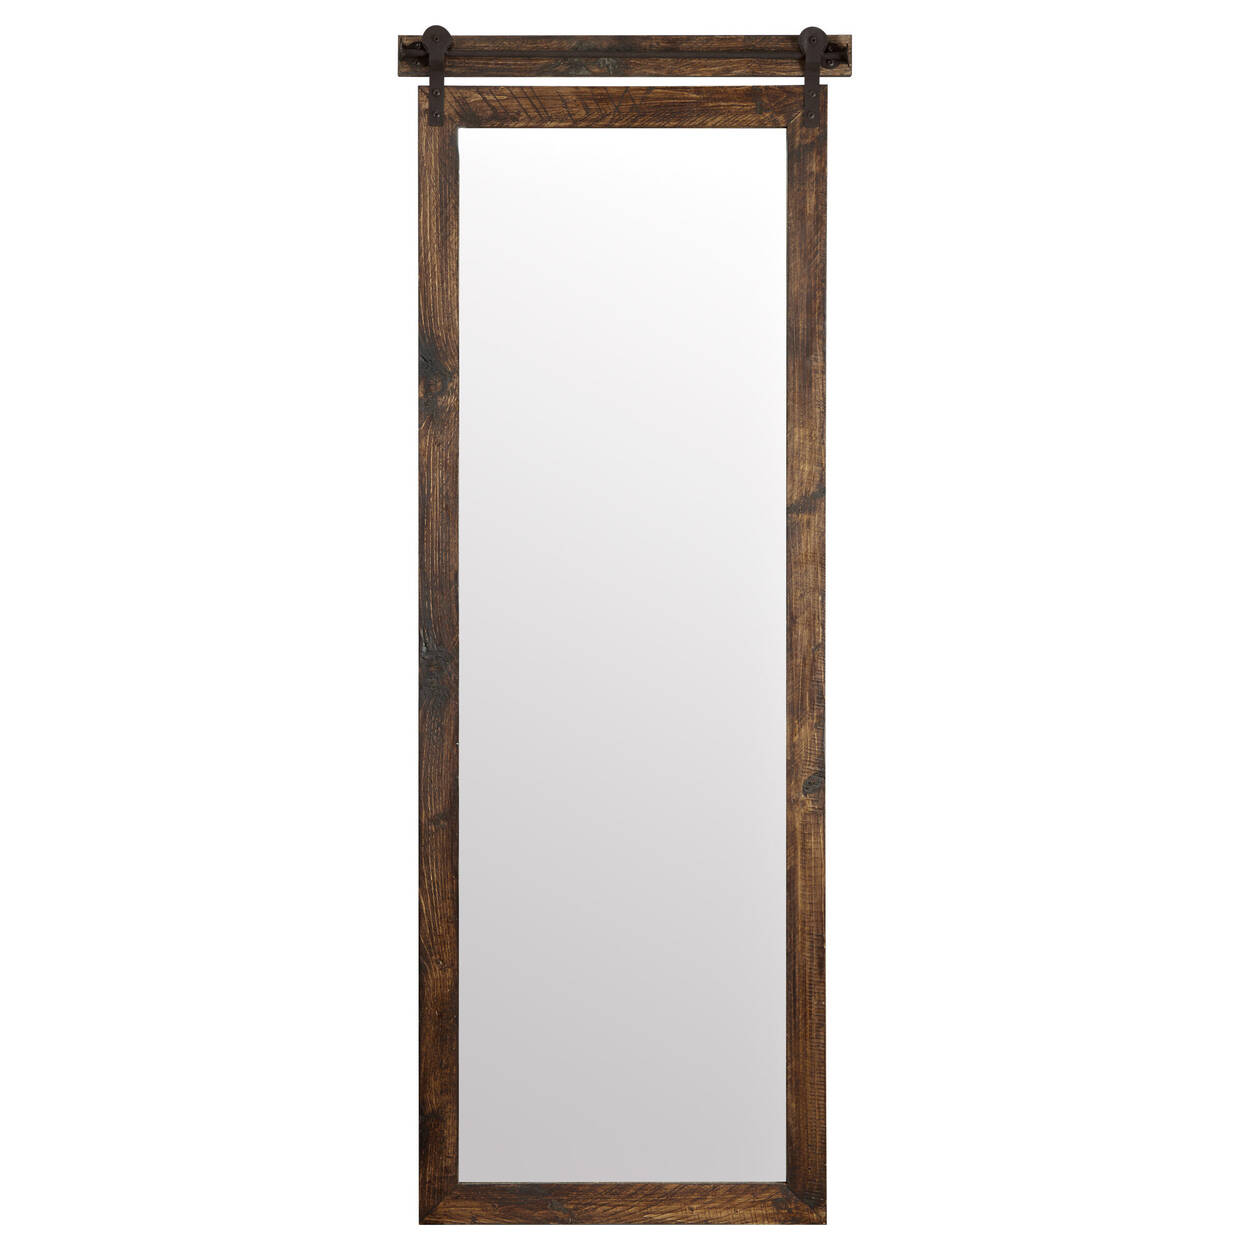 Barn Door Look Mirror